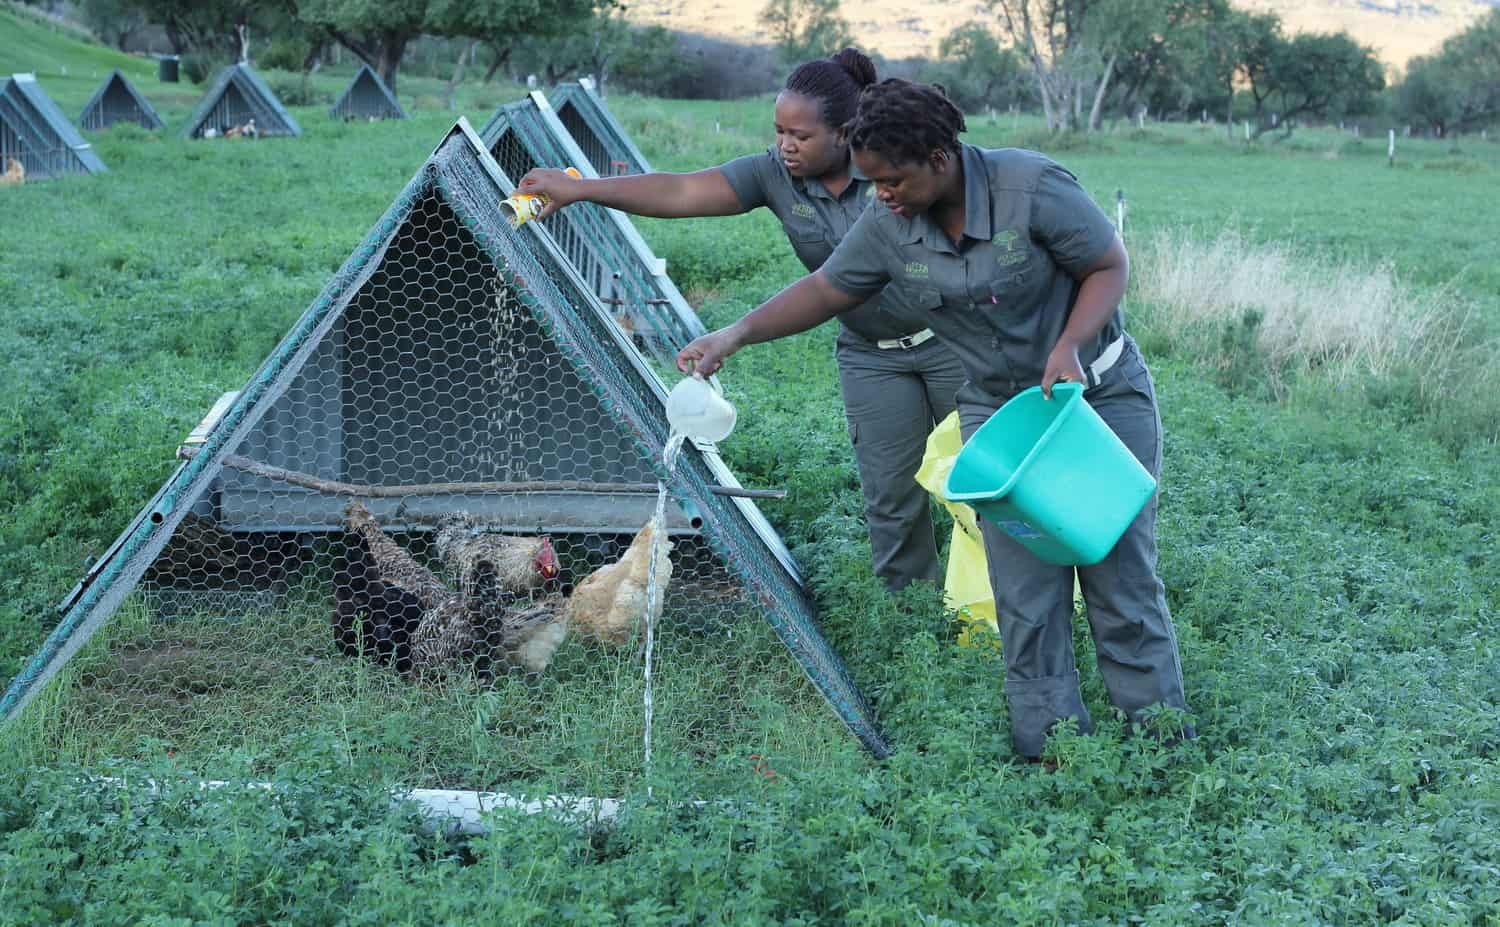 Nomahlubi Simoyisi (left) and Nwabisa Mkhandlwana, both from the Matatiele district, feed and water the chickens before first light.